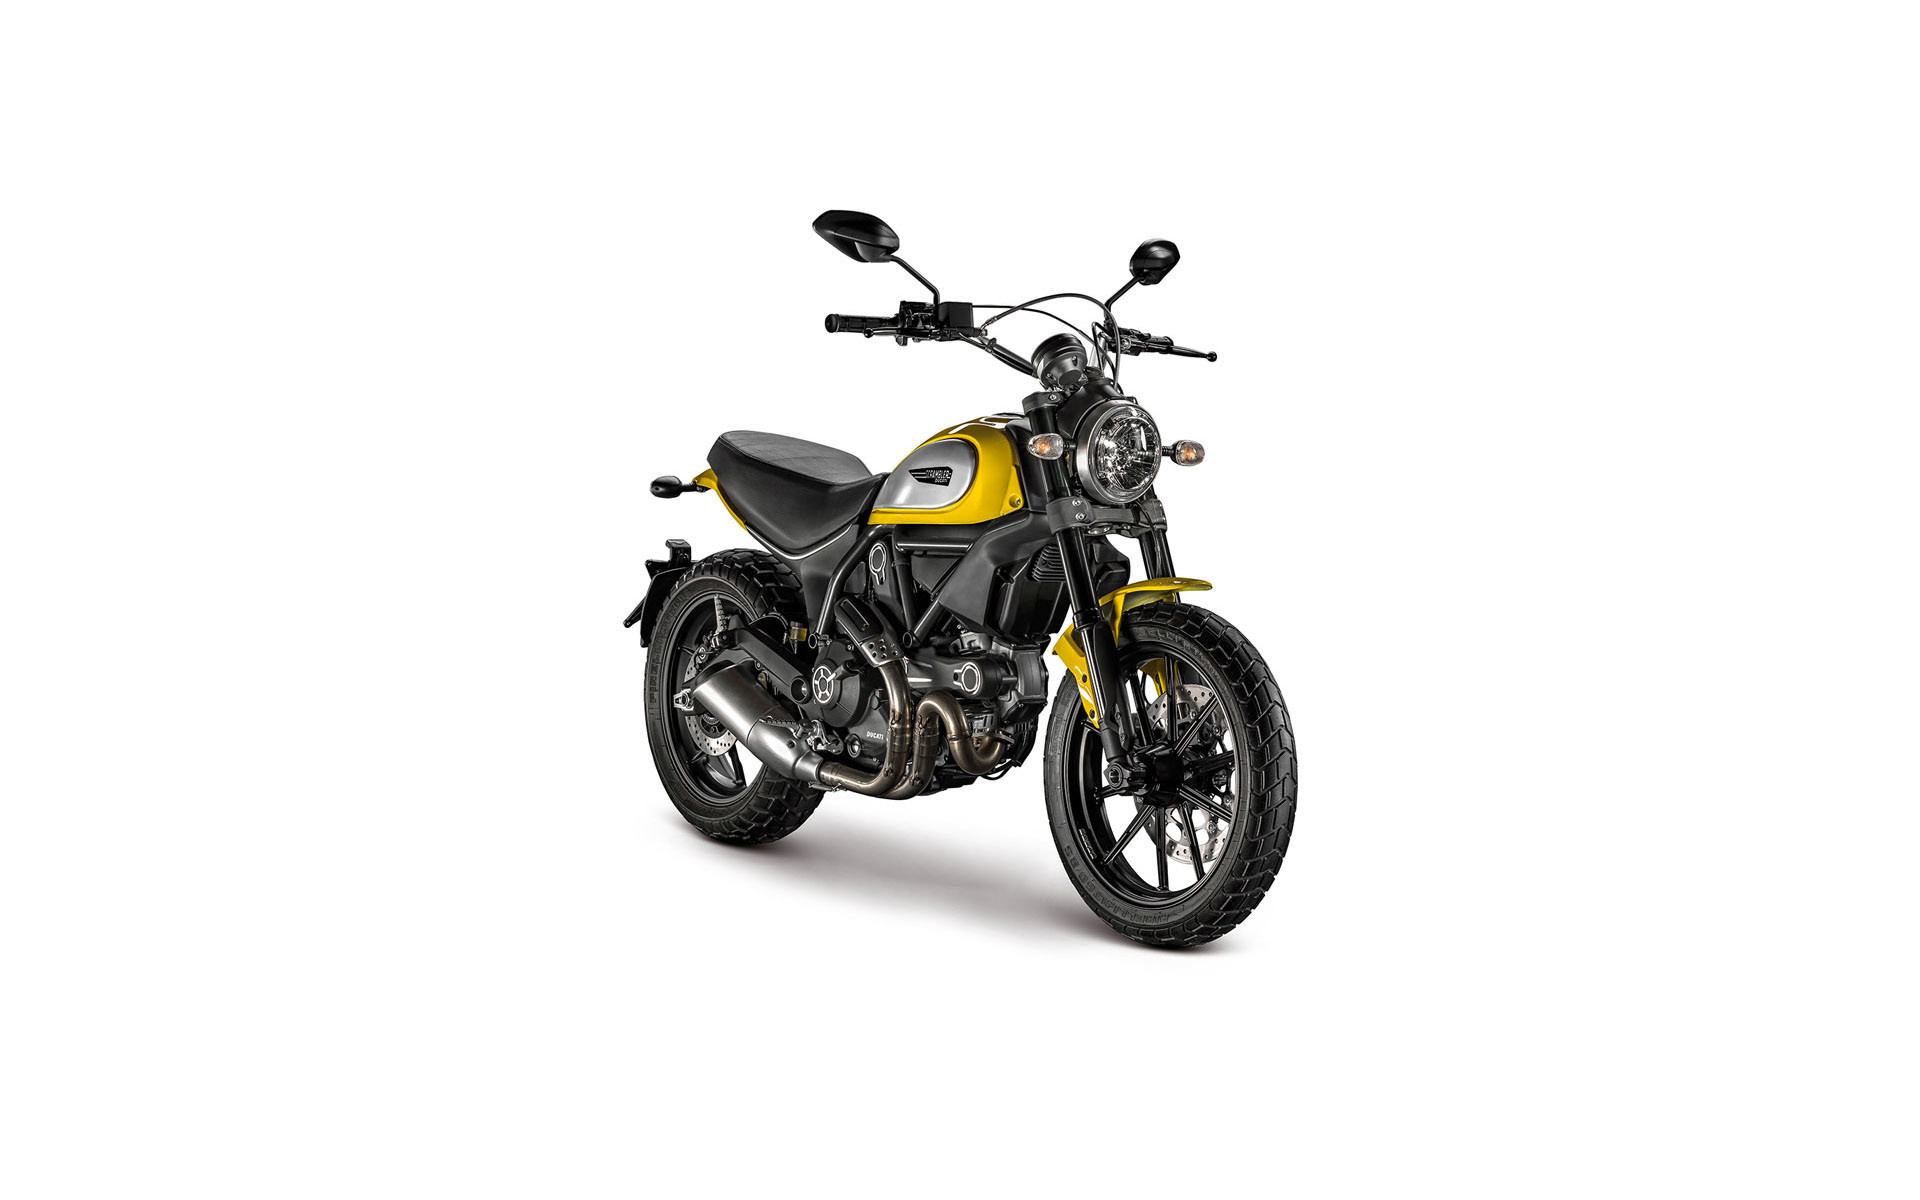 1920x1200 Ducati Scrambler Wallpaper - WallpaperSafari